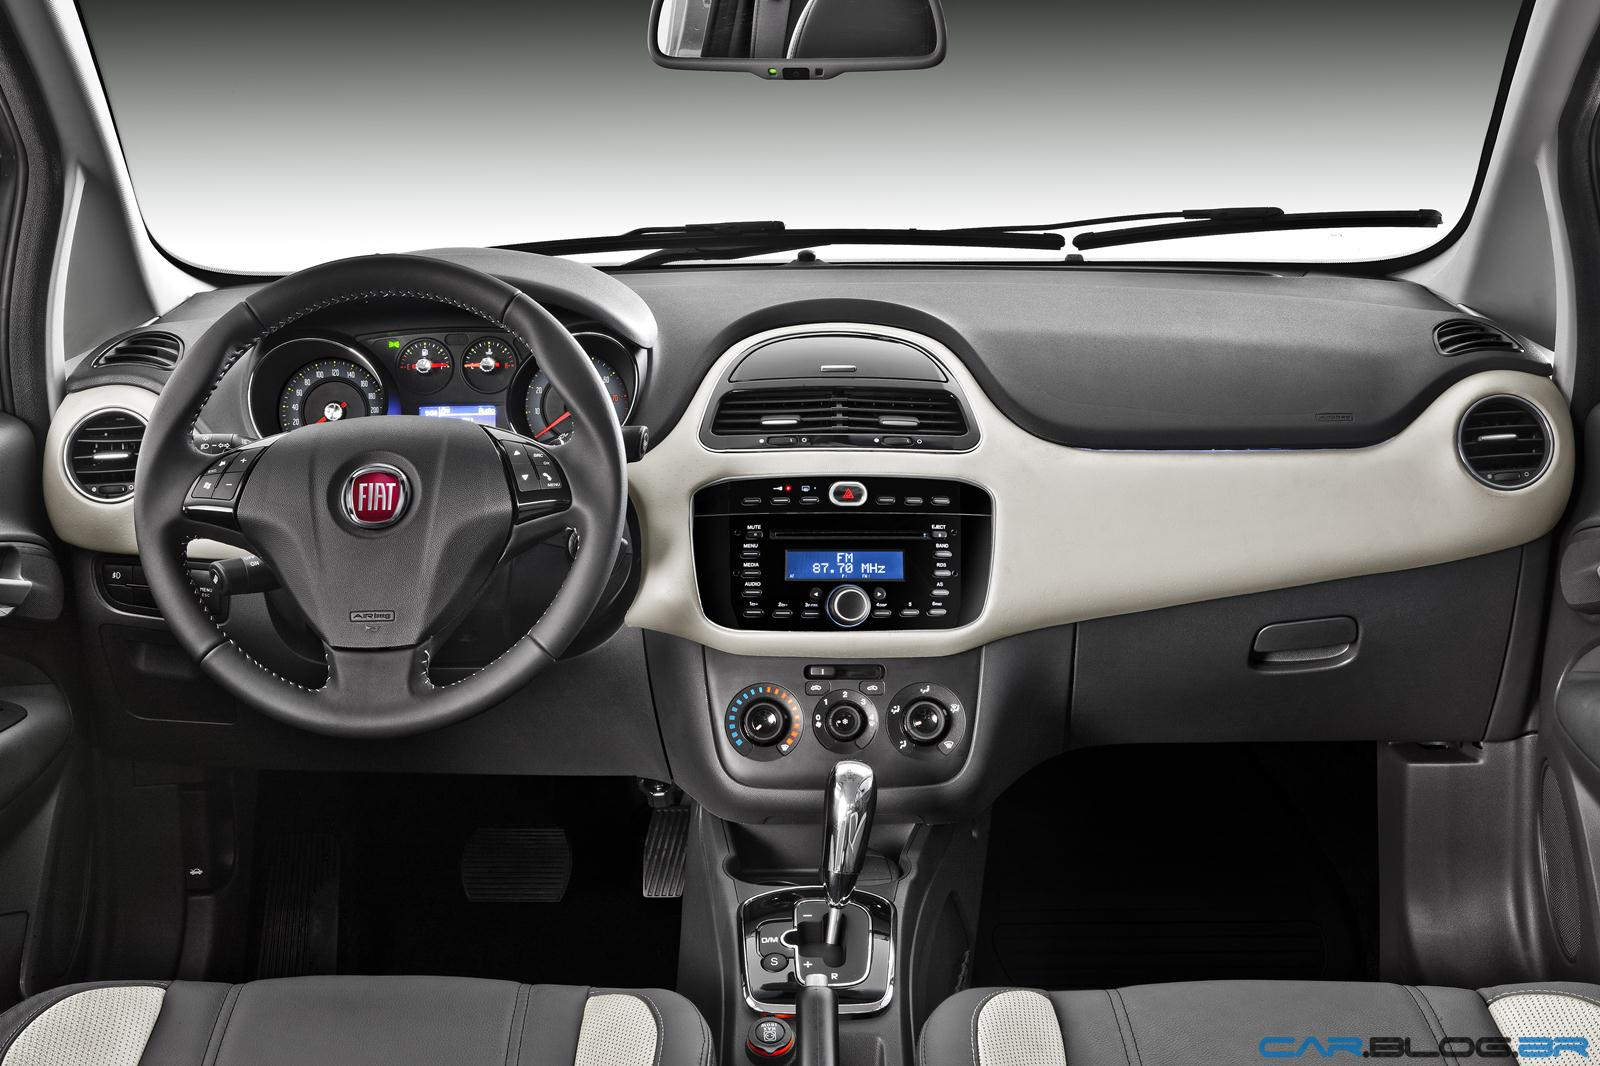 fiat punto radio html with Fiat Punto Essence 16 16v 2013 on Citroen C2 C3 C4 C5 C6 C8 Cd Stereo Wiring Harness Aerial Adaptor And Keys also 58568 Kommen Winterreifen Muss Tuev furthermore Topic1854860 additionally Schema Fili Stereo Pacr06 T8063 together with Sale For Fiat Punto Abarth Punto Evo.